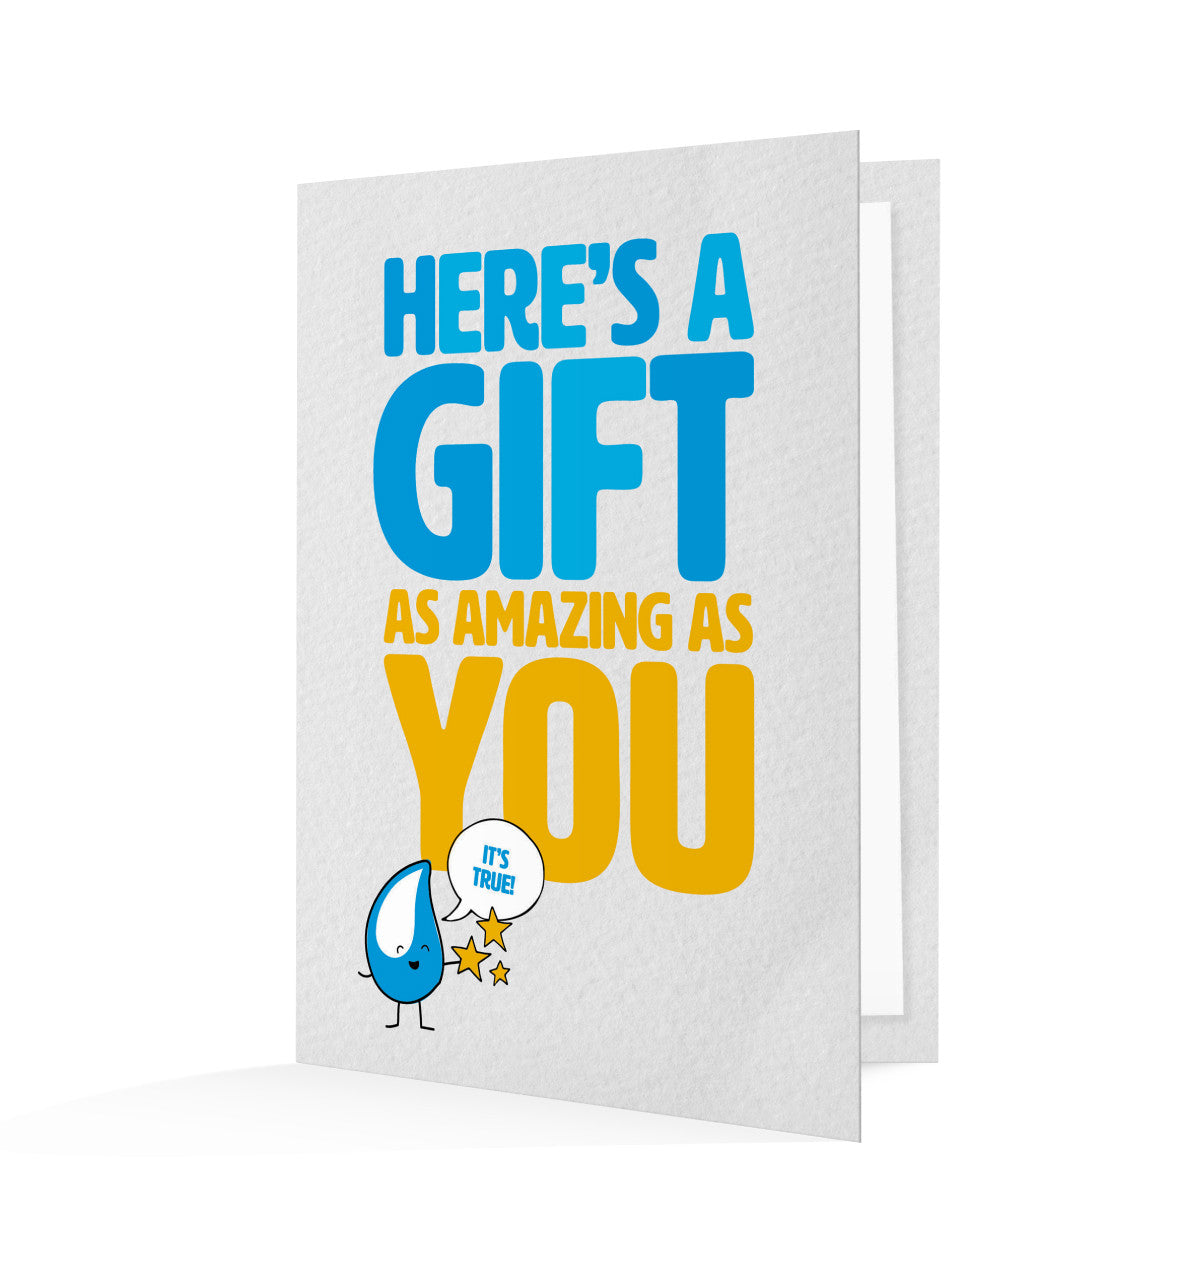 Gifting this card to someone special will provide a hand pump to a whole community.